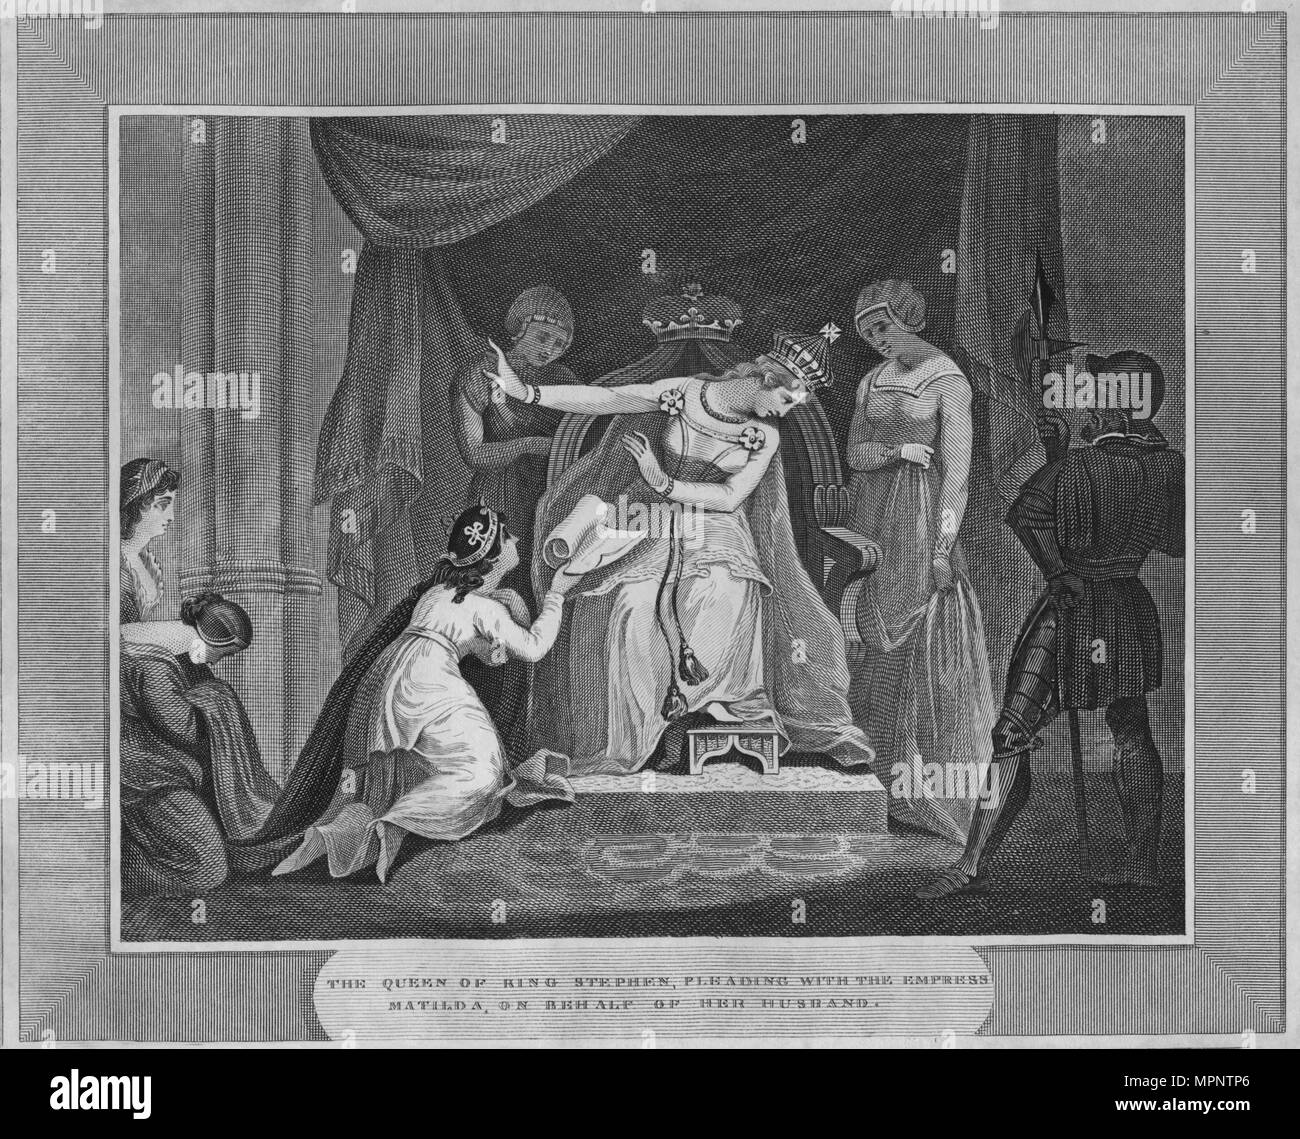 'The Queen of King Stephen, Pleading with the Empress Matilda, on behalf of Her Husband', 1838. Artist: Unknown. - Stock Image